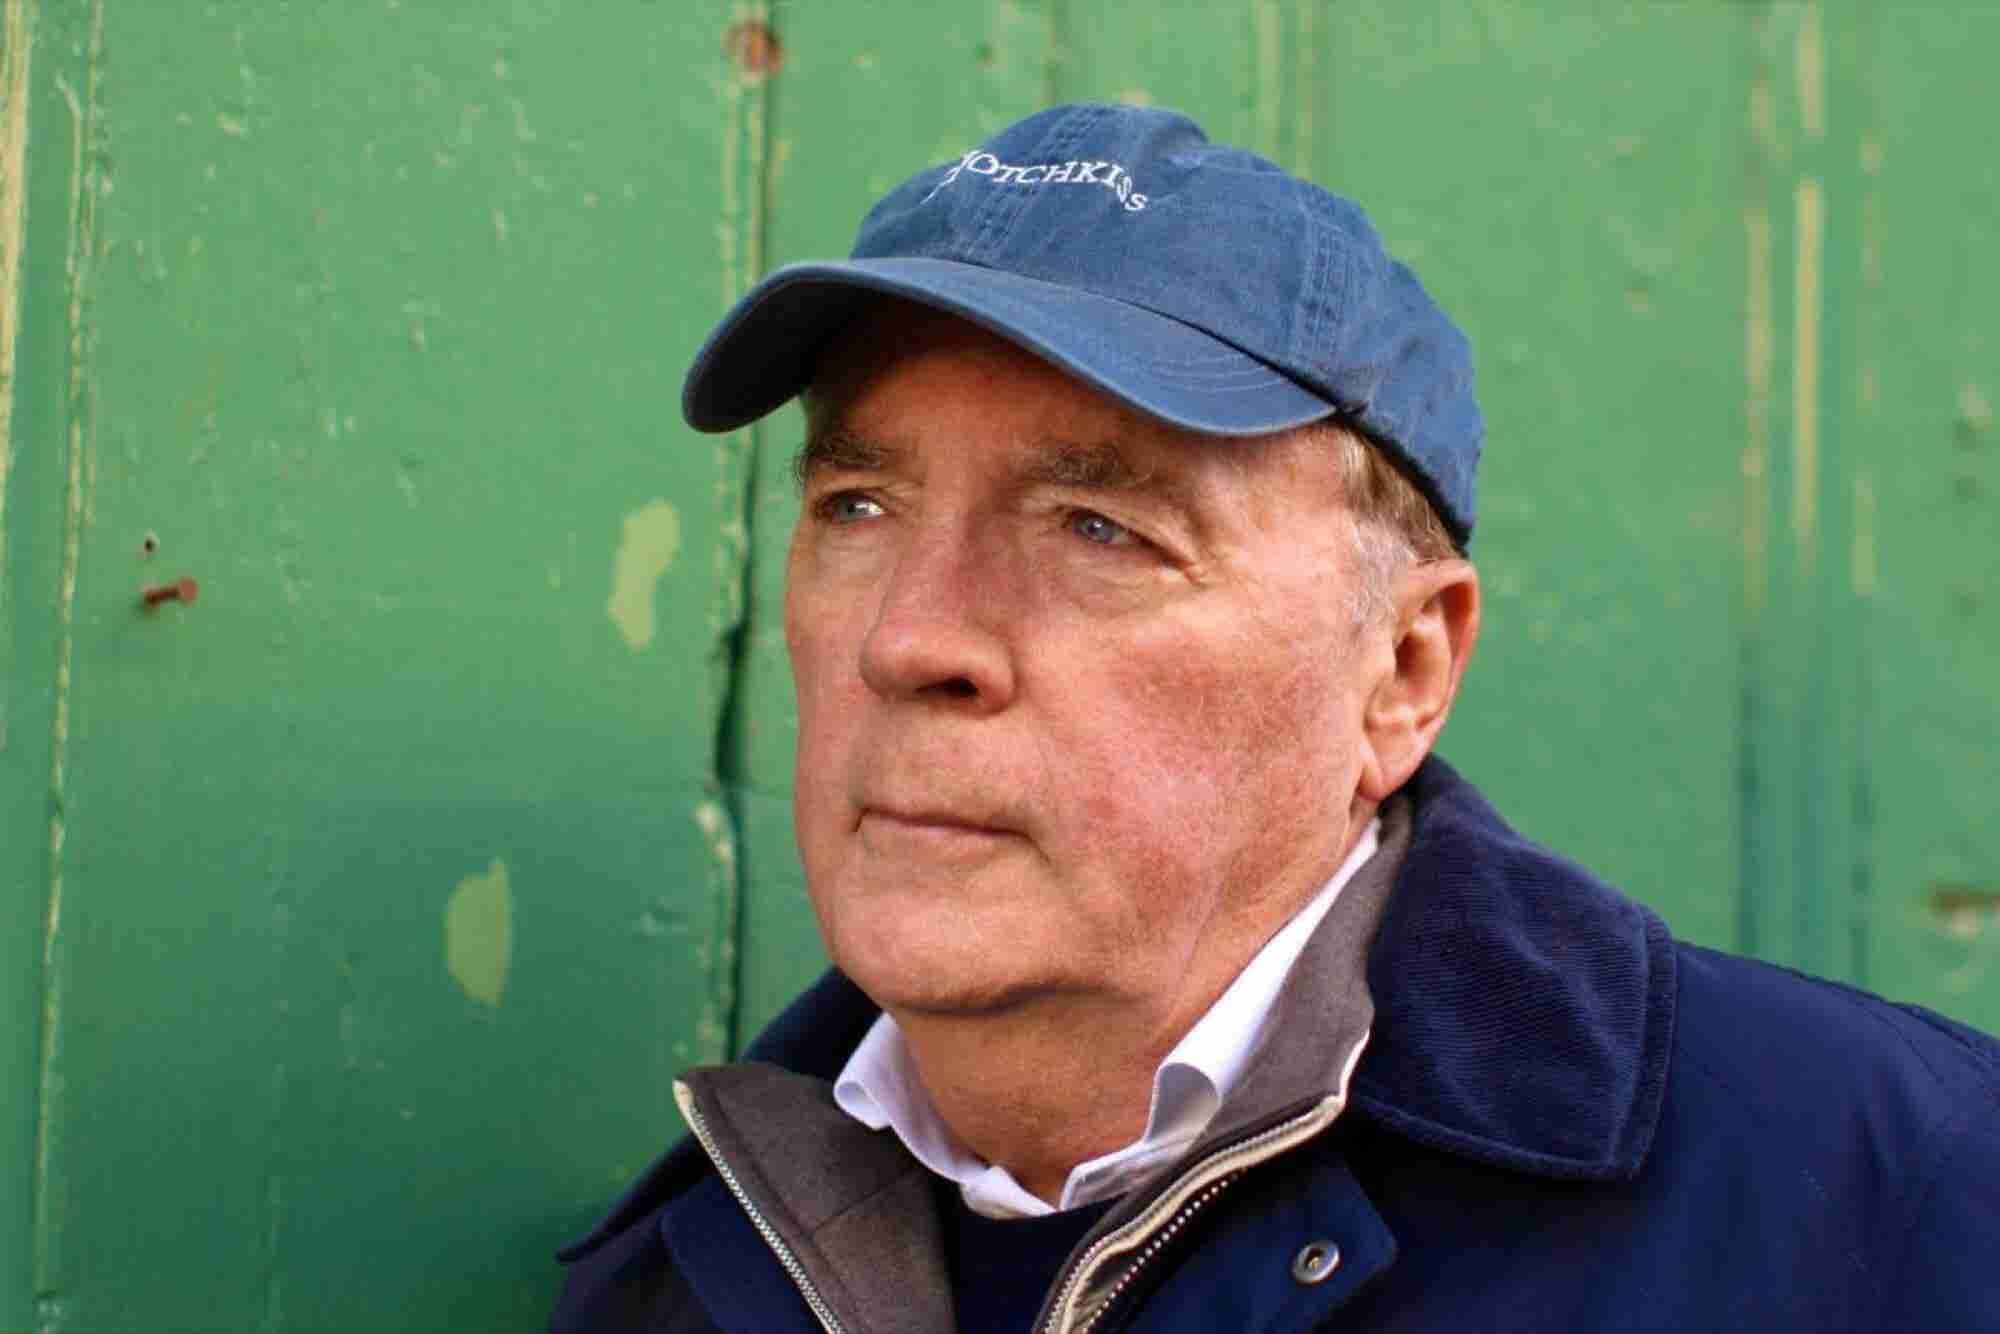 James Patterson Wants to Ignite Sales With $300,000 Self-Destructing Book